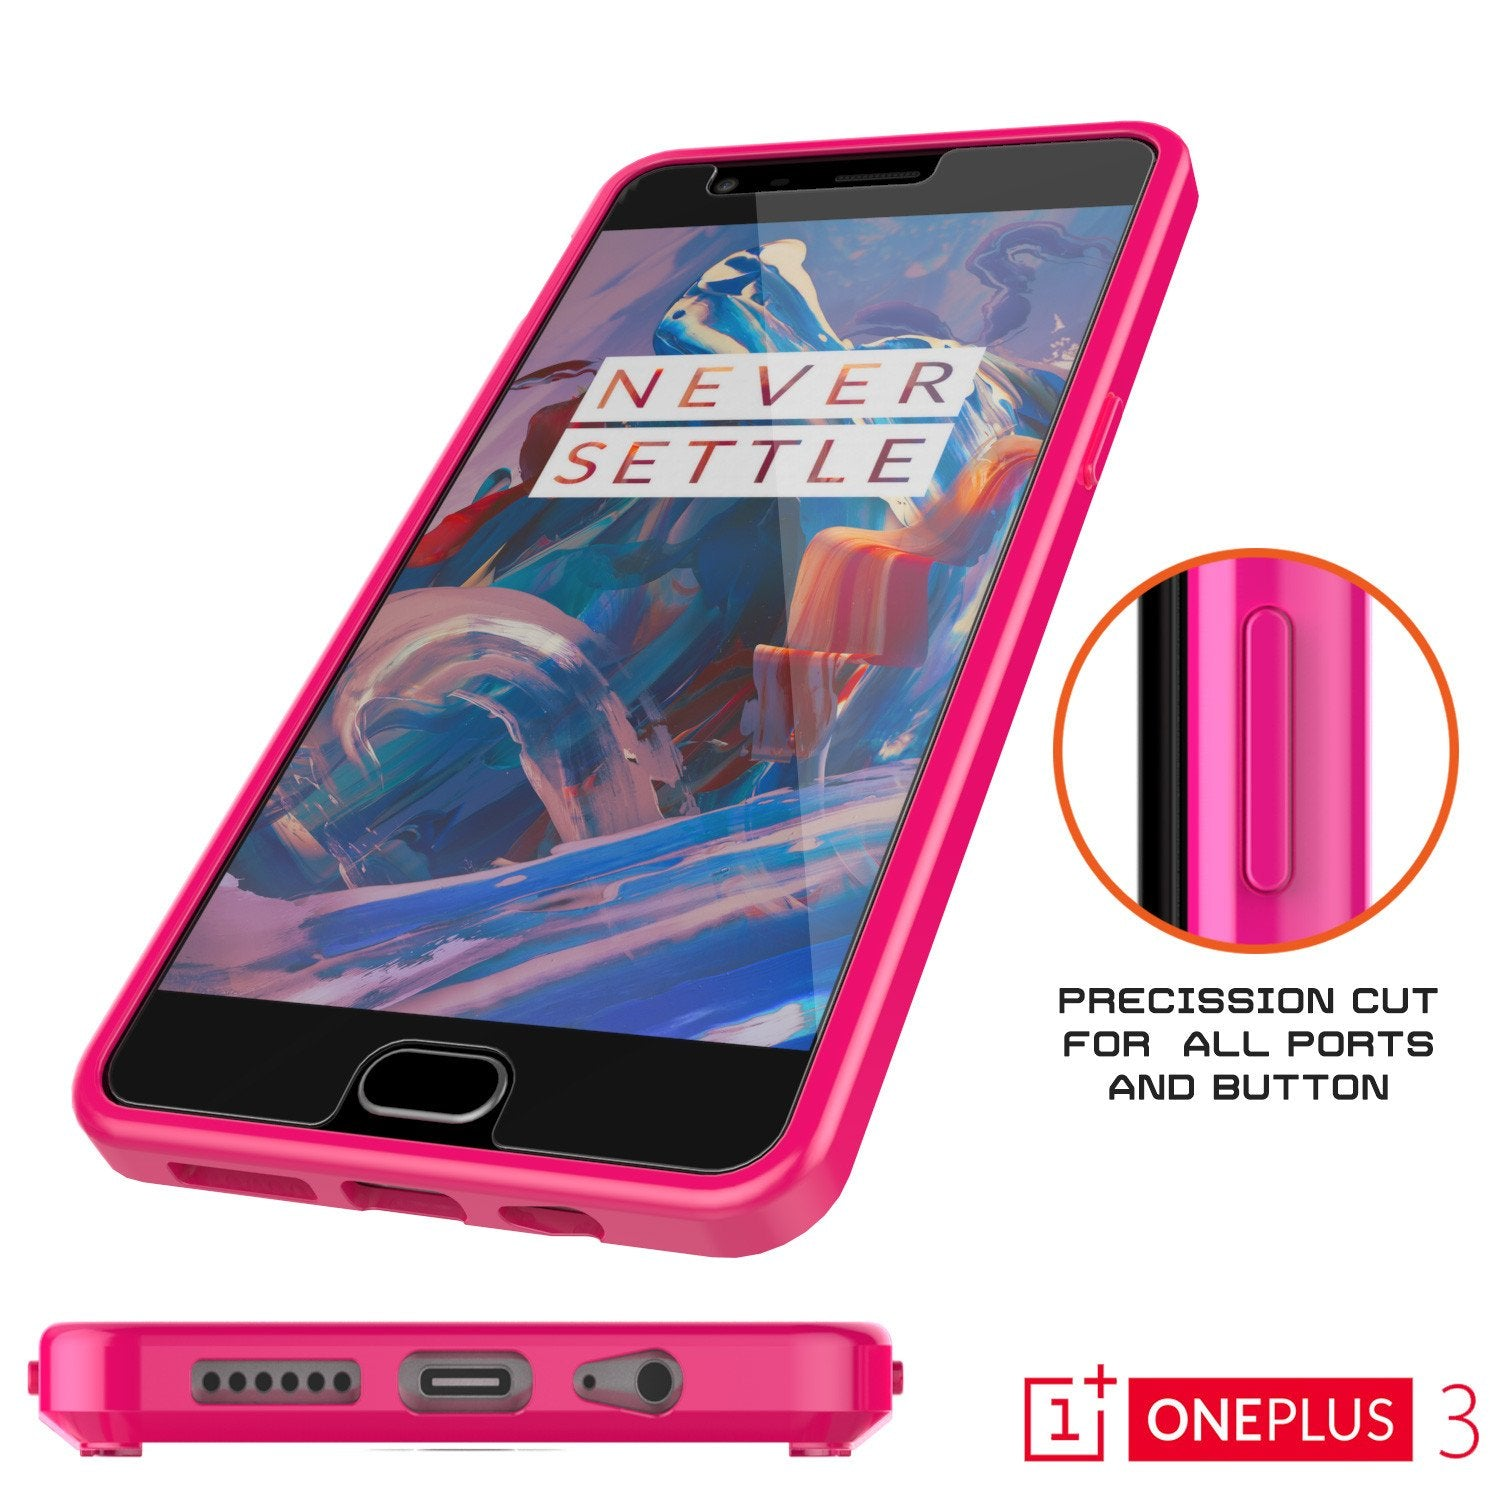 OnePlus 3 Case Punkcase® LUCID 2.0 Pink Series w/ SHIELD GLASS Lifetime Warranty Exchange - PunkCase NZ